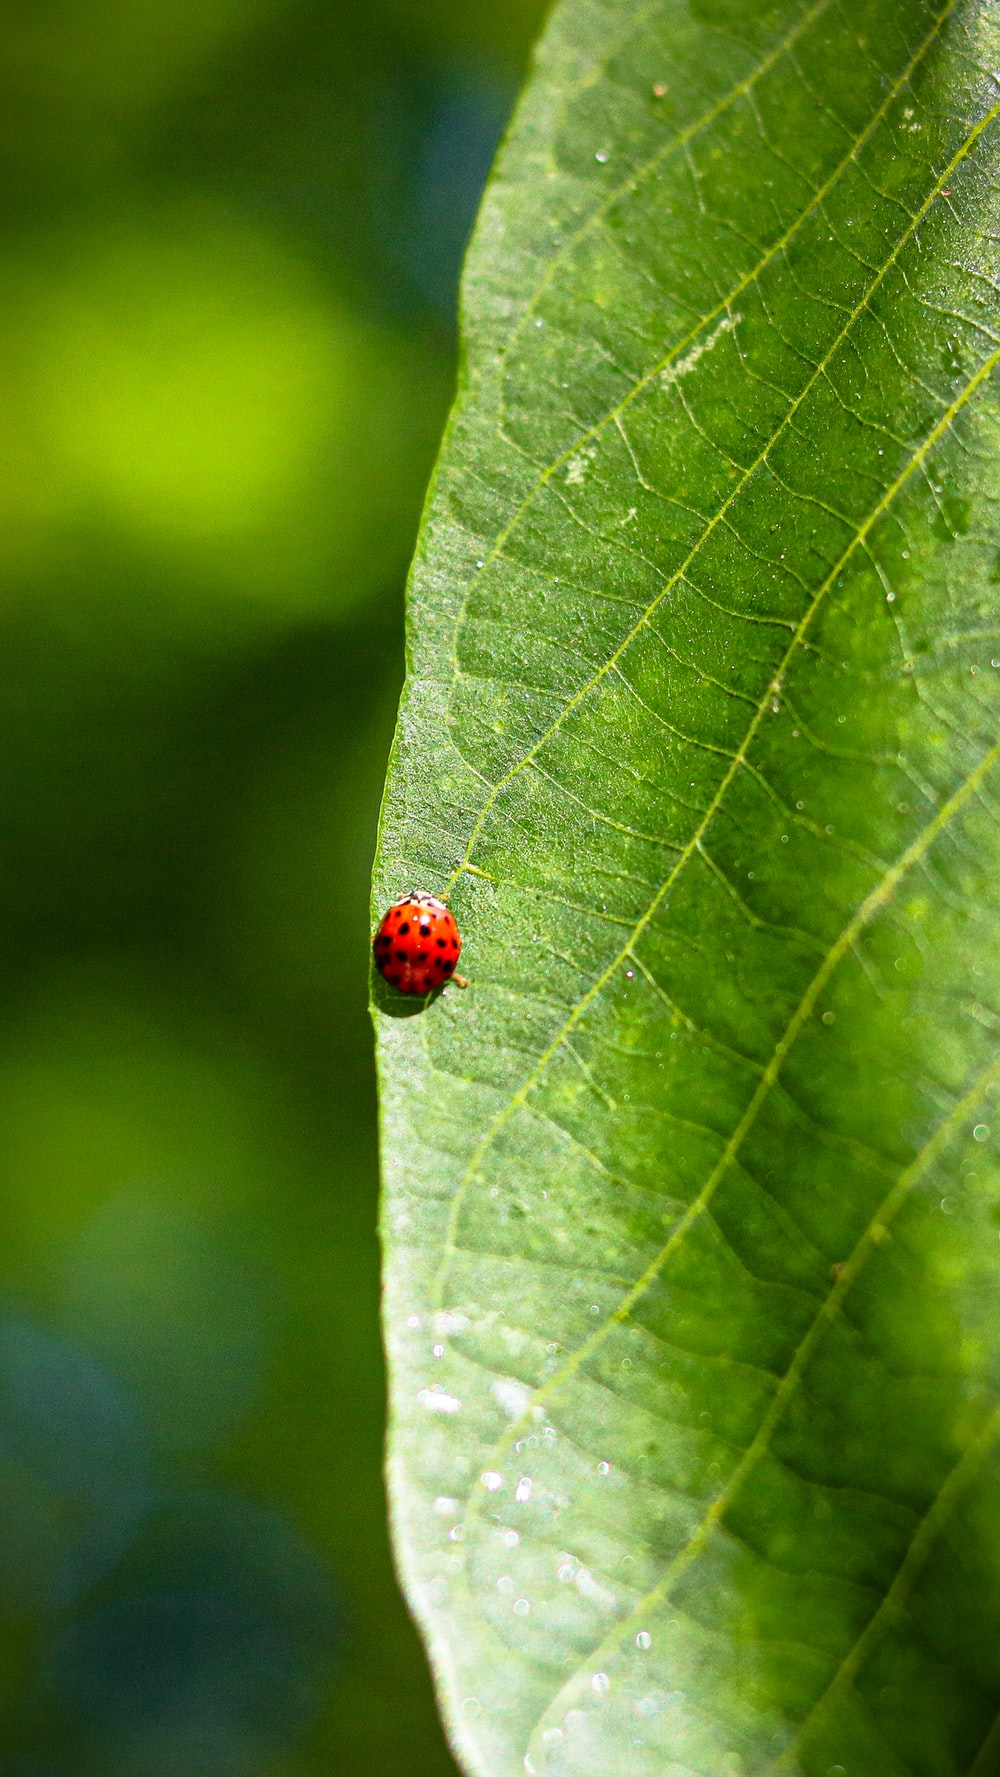 red ladybug on green leaf in close up photography during daytime